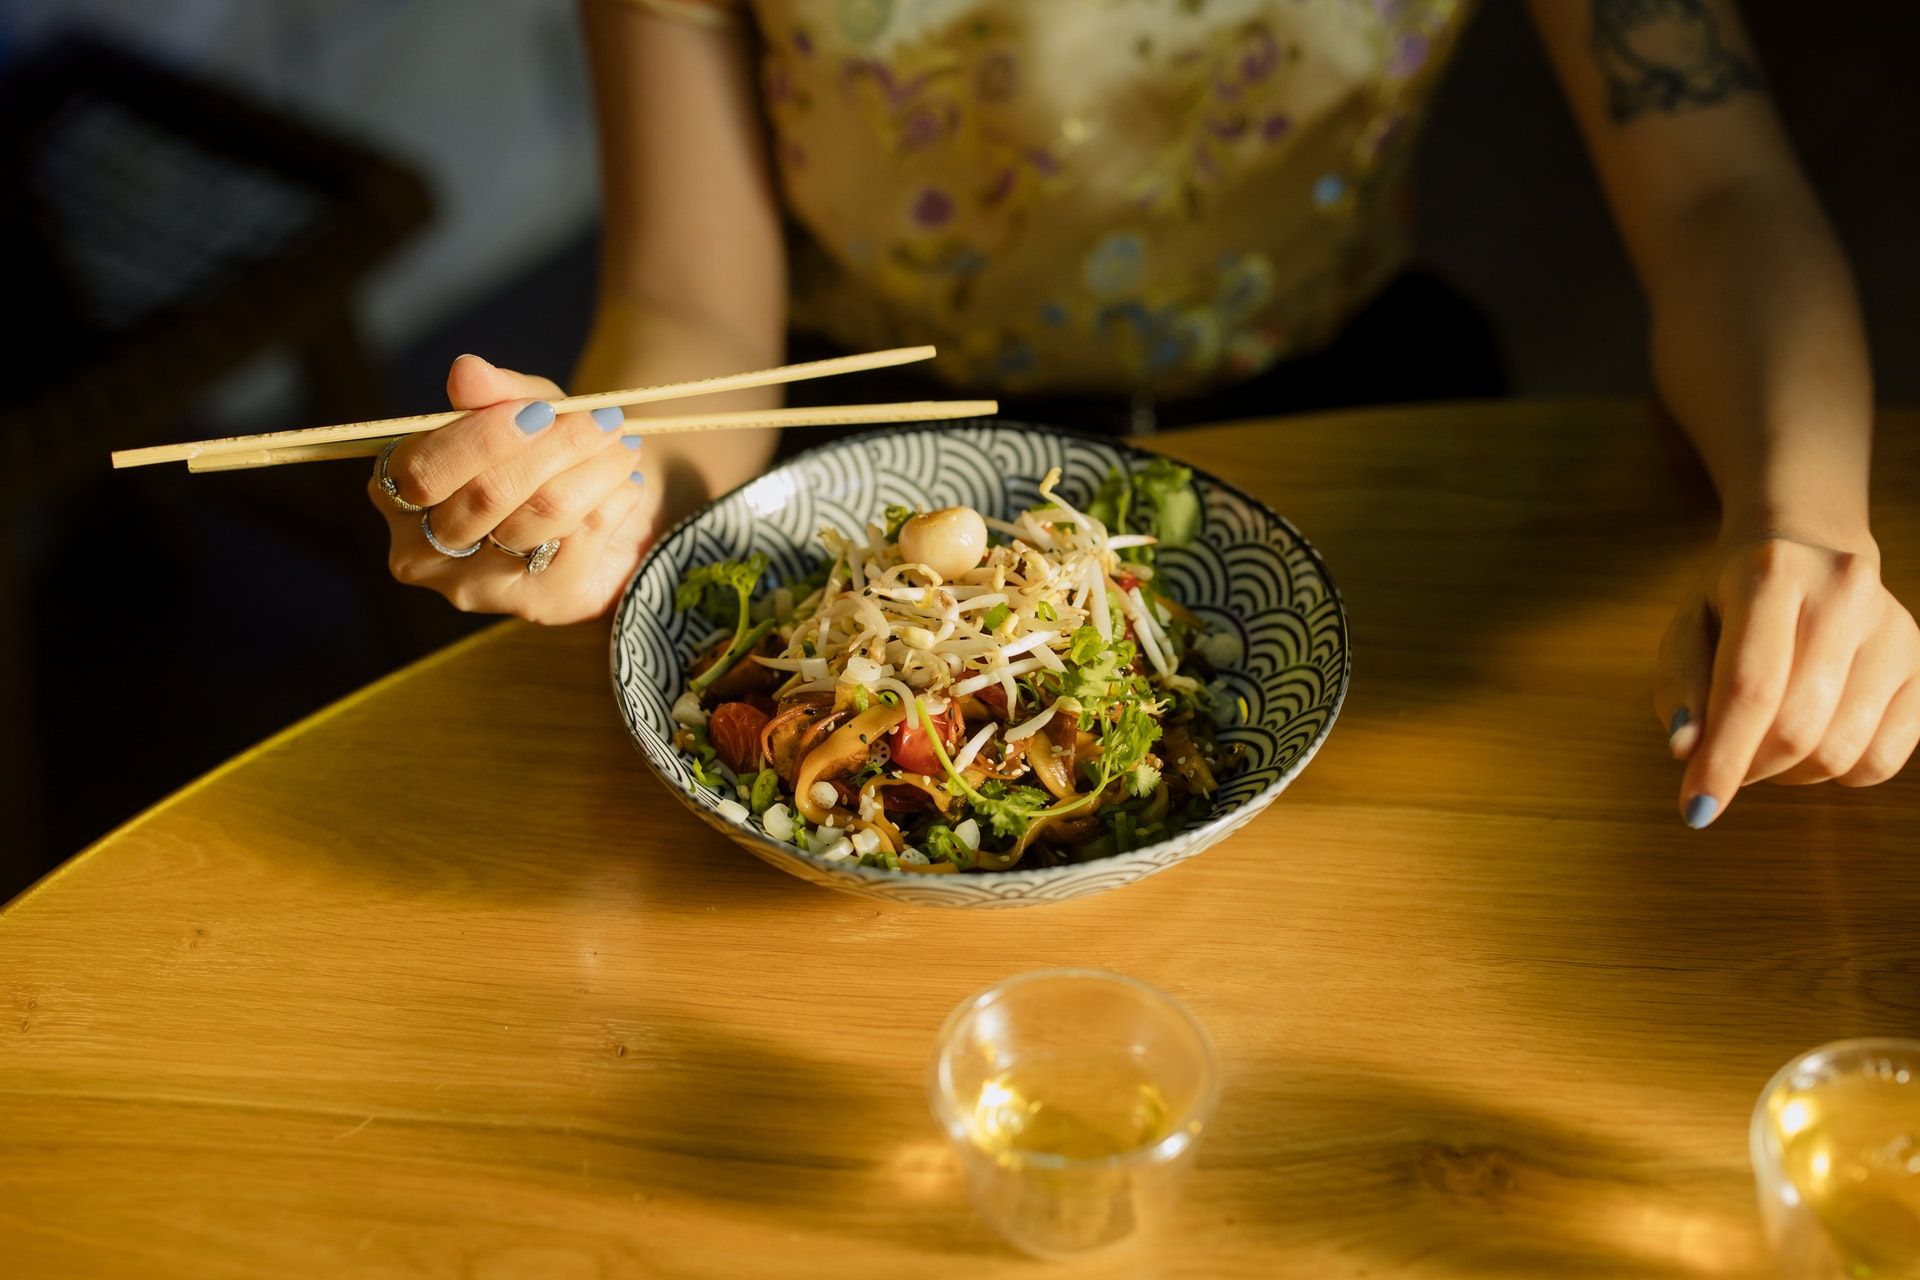 Traditional Chinese salad - one of the most popular salad in Asia